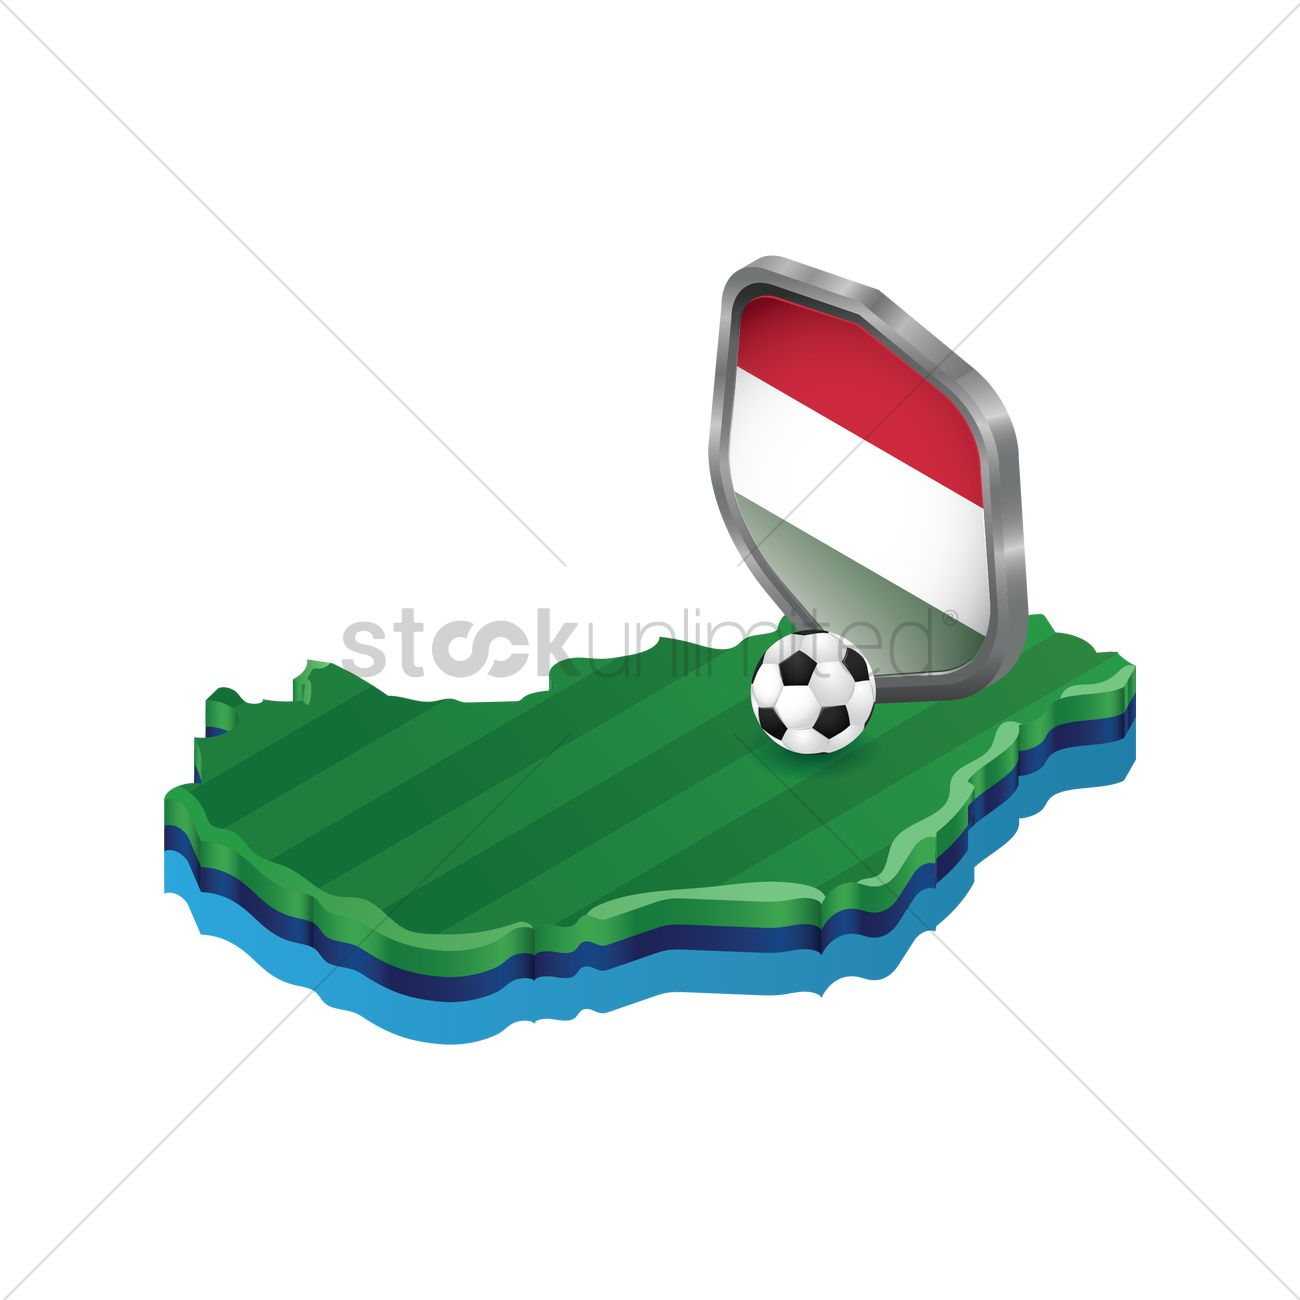 1300x1300 Hungary Map With Soccer Ball And Shield Vector Image